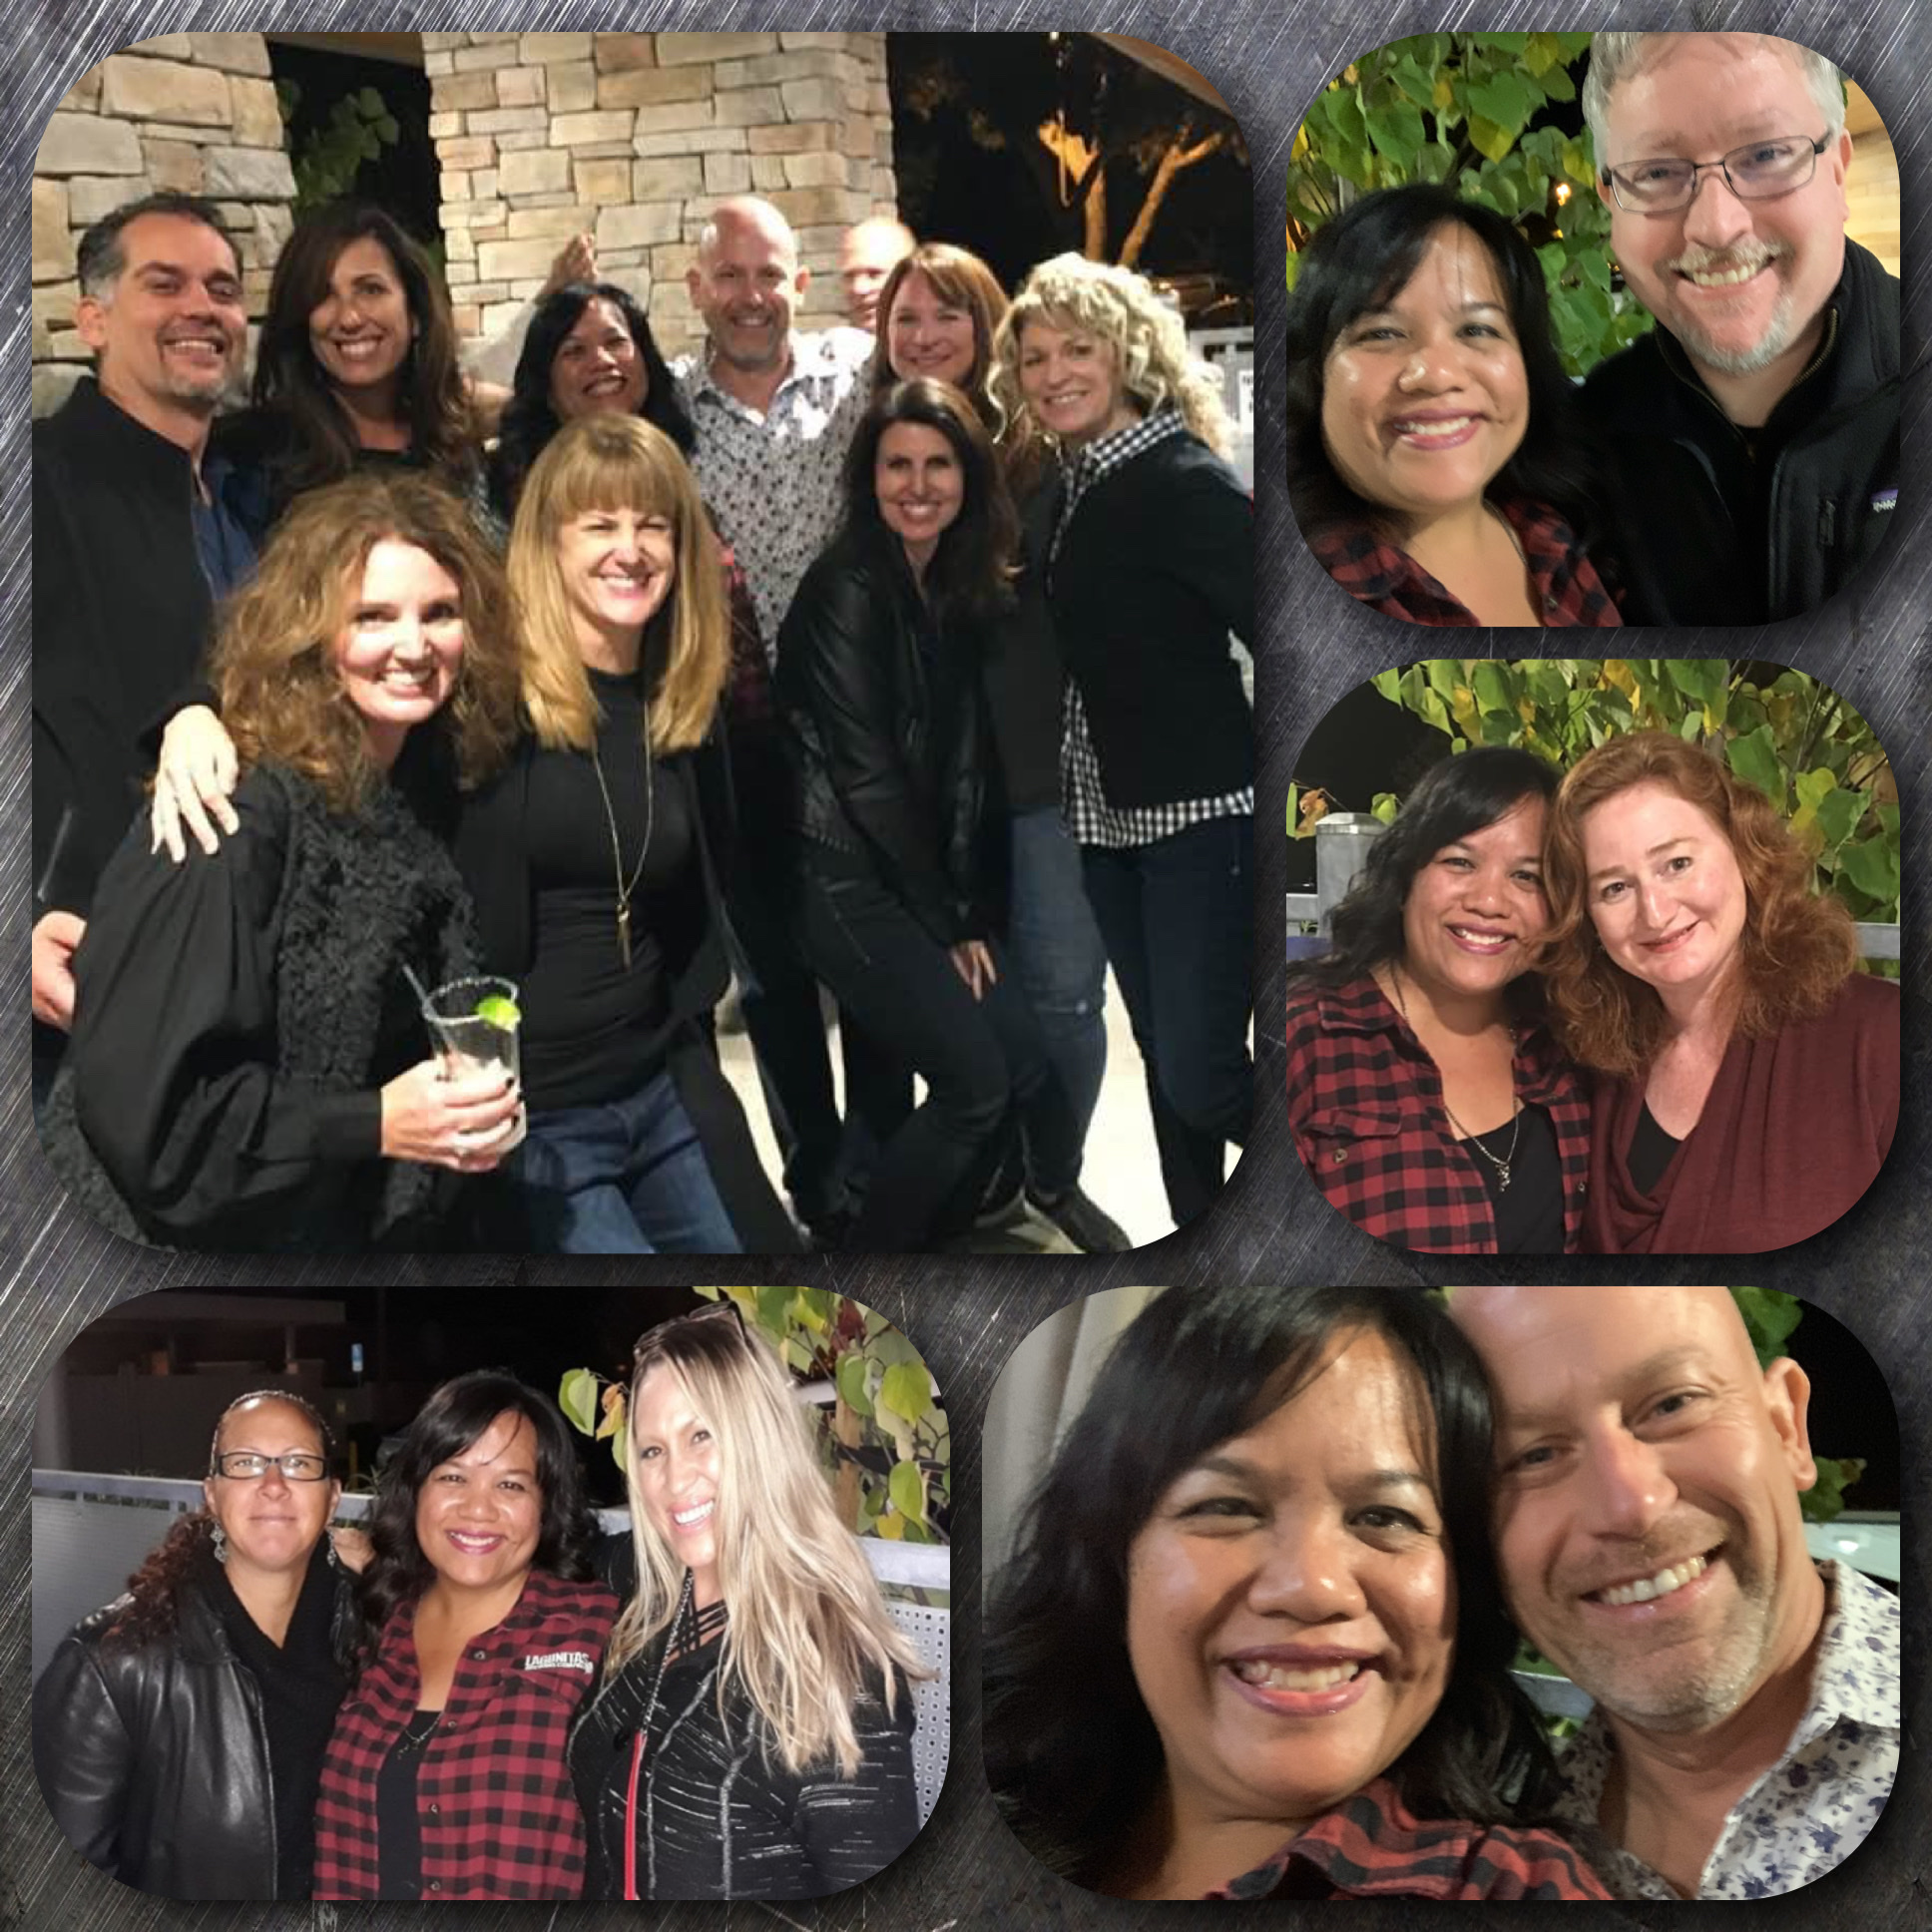 collage of HS reunion photos